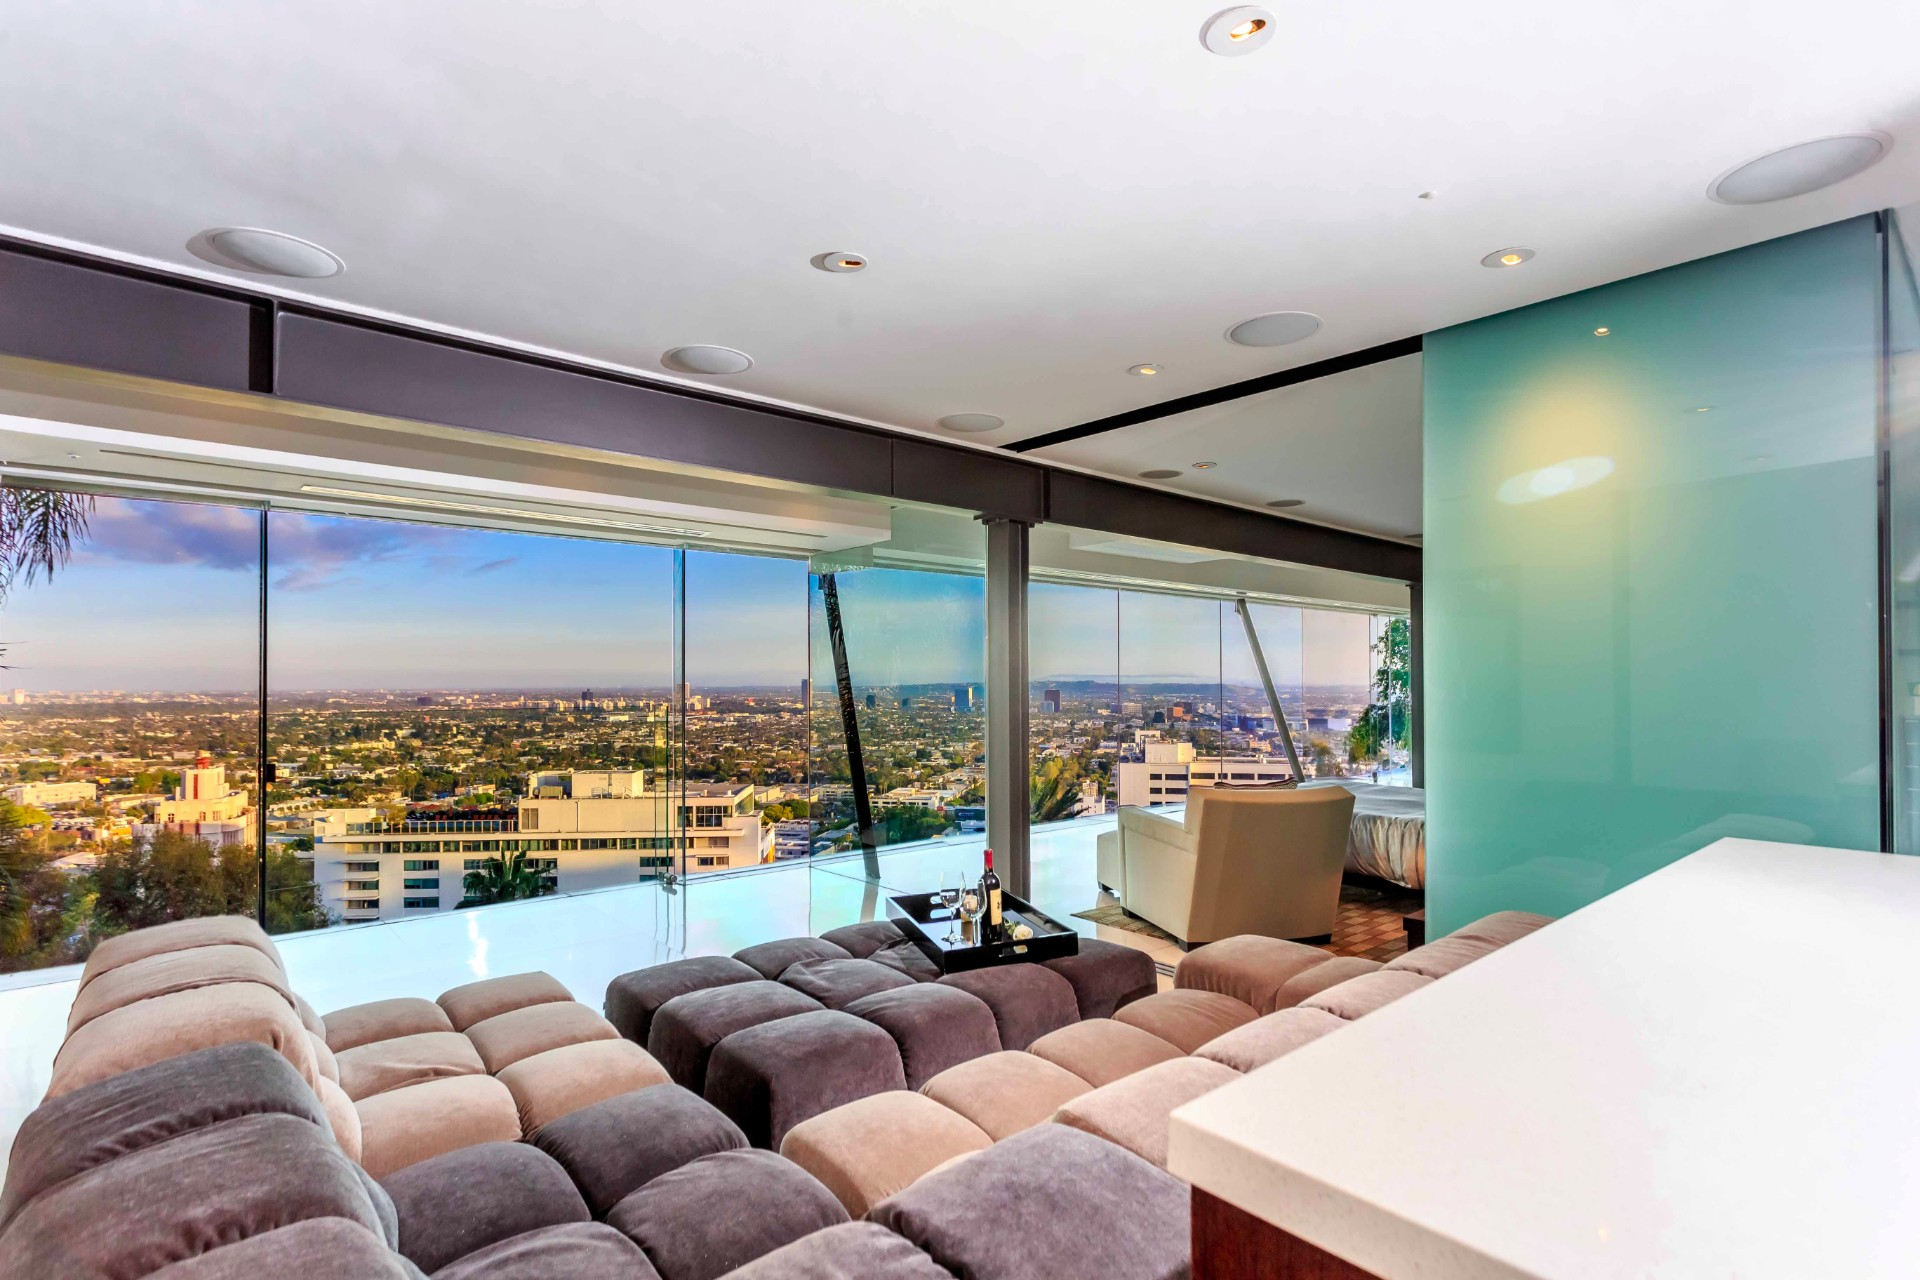 8444-Harold-Way-giant-couch-view